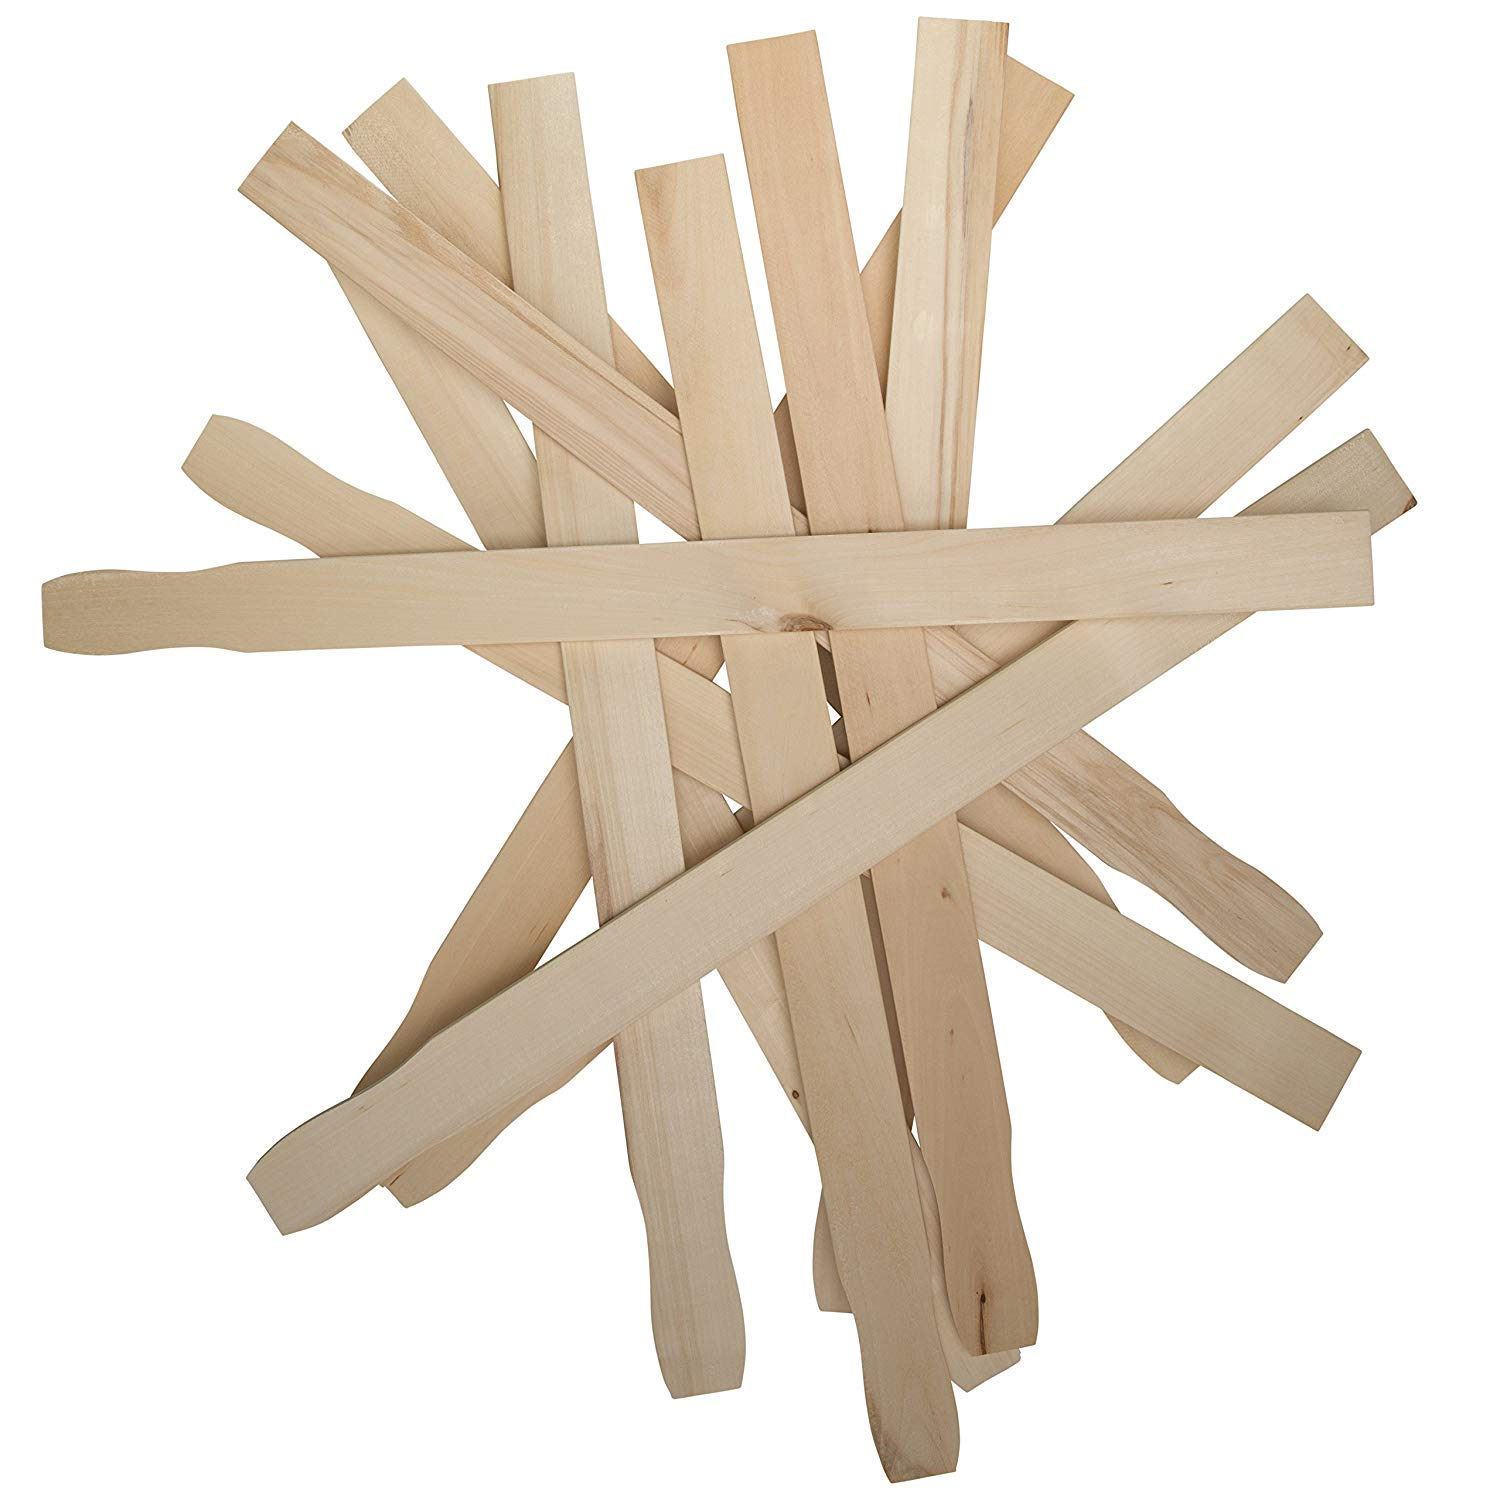 6 Inch Paint Sticks, Box of 1000 Sanded Hardwood Paint Stirrers for Wax, Mix Epoxy, Resin or Kids Wood Crafts, Garden and Library Markers by Woodpeckers